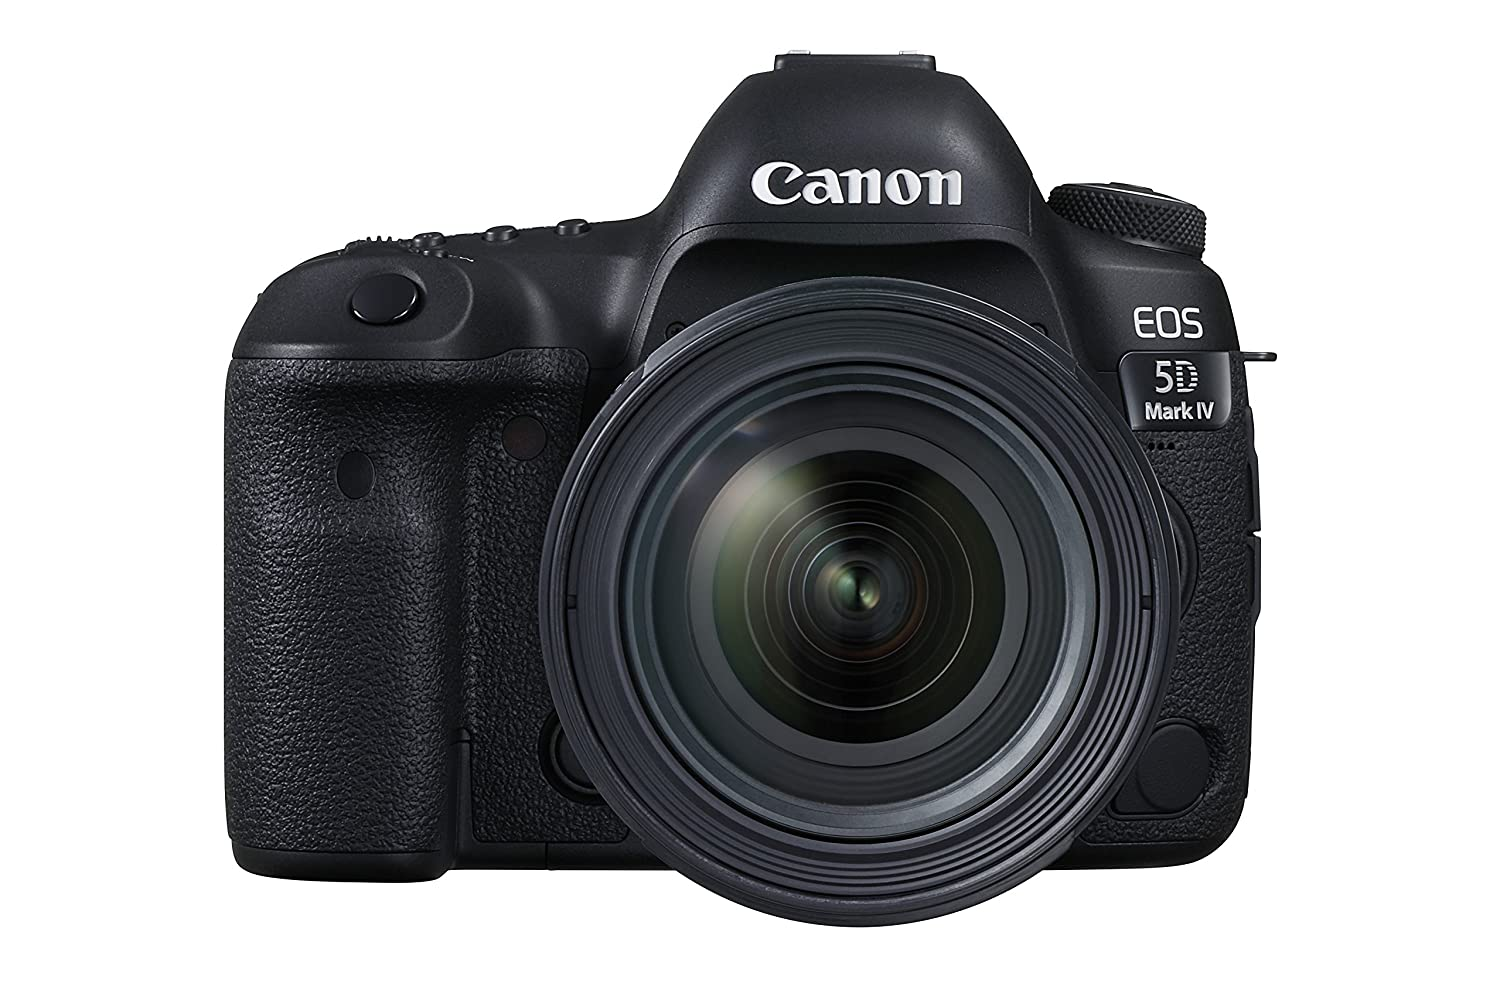 Canon EOS 5D Mark IV Full Frame Digital SLR Camera with EF 24-105mm f/4L IS II USM Lens Kit 1483C010